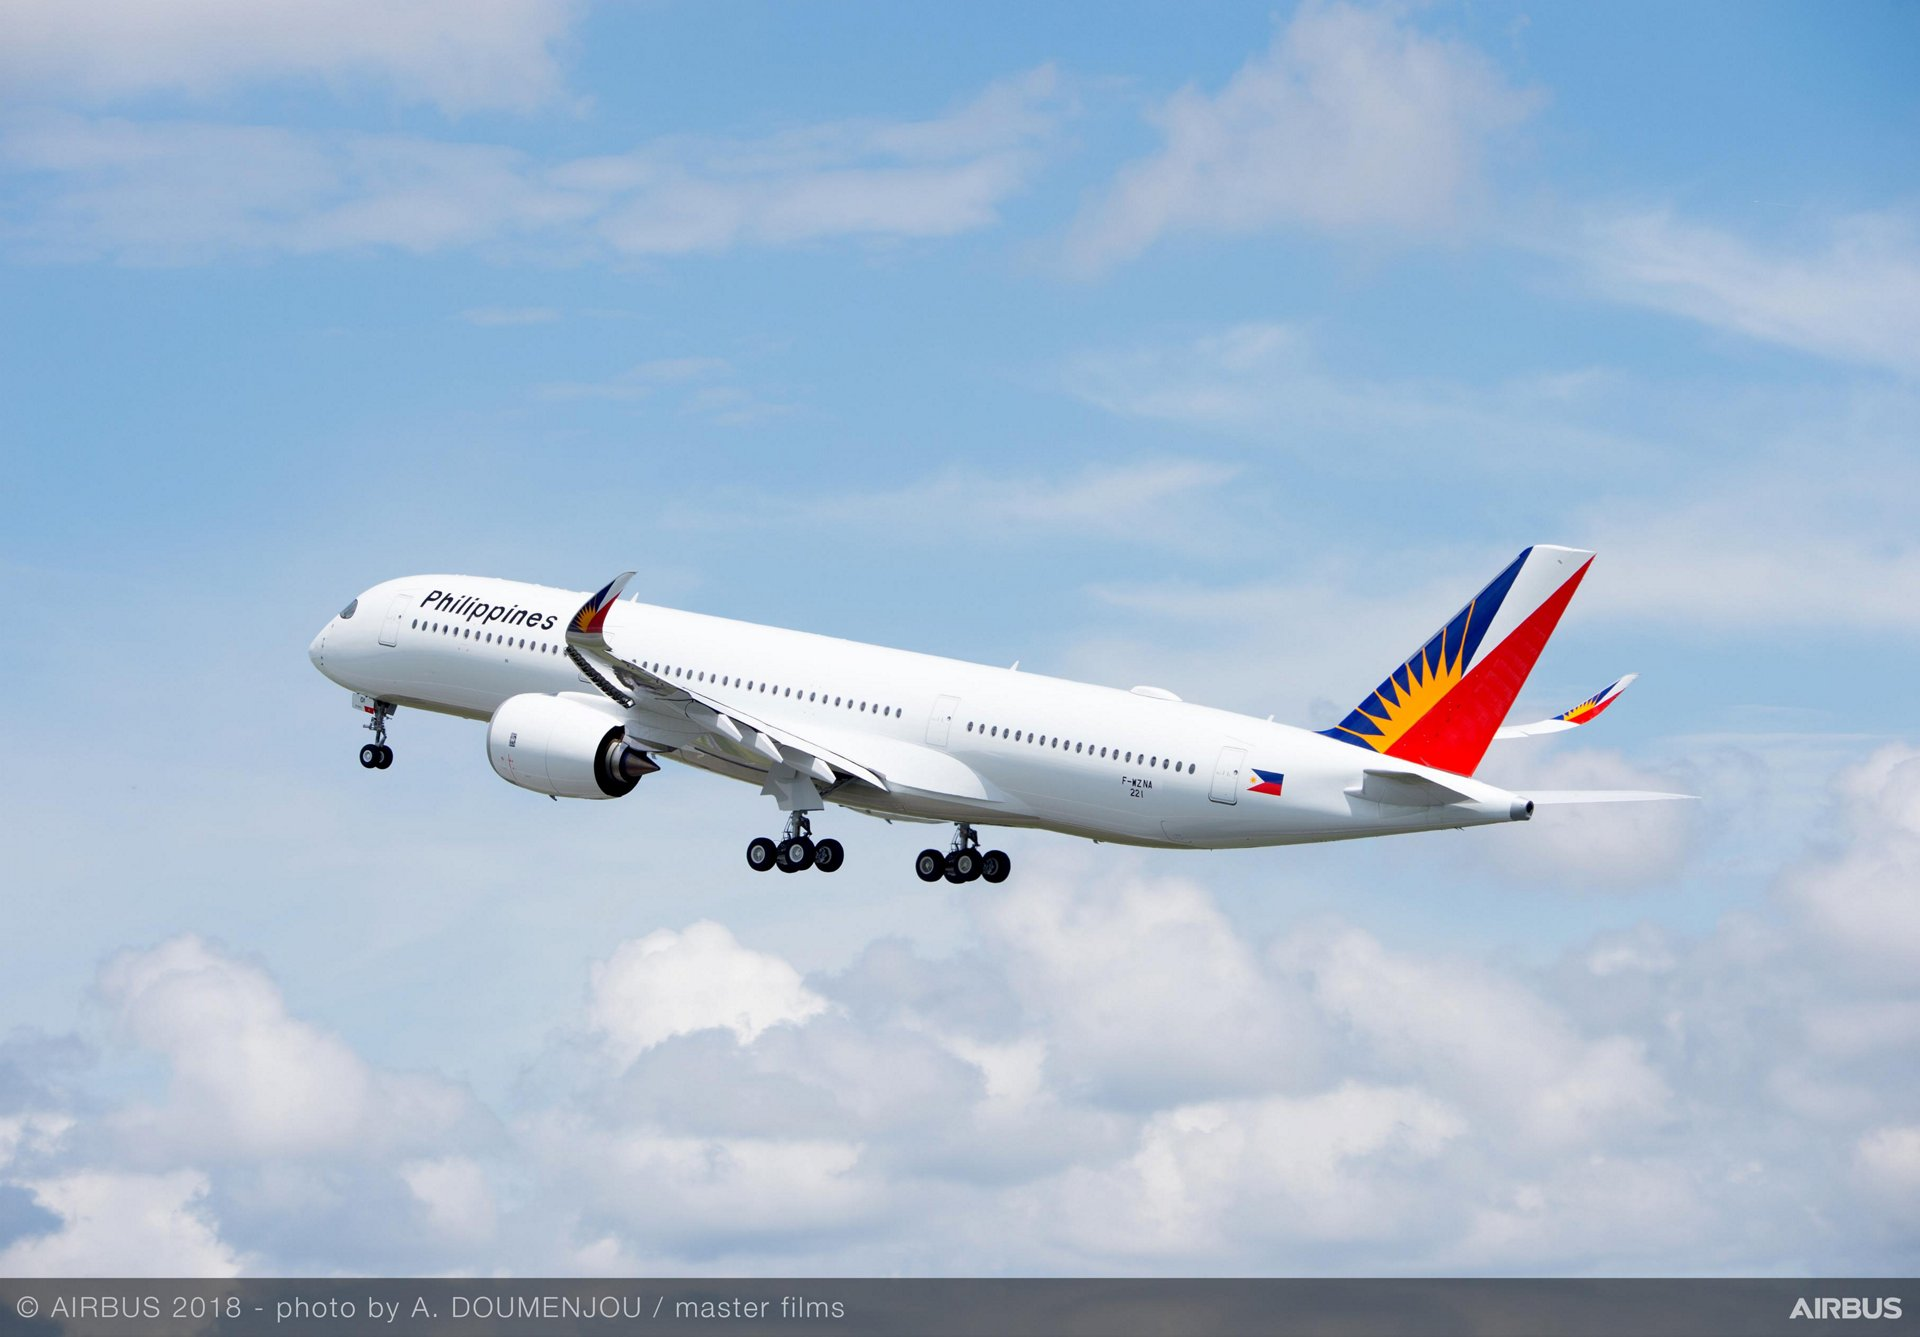 Maiden flight of Philippine Airlines' no. 1 A350-900